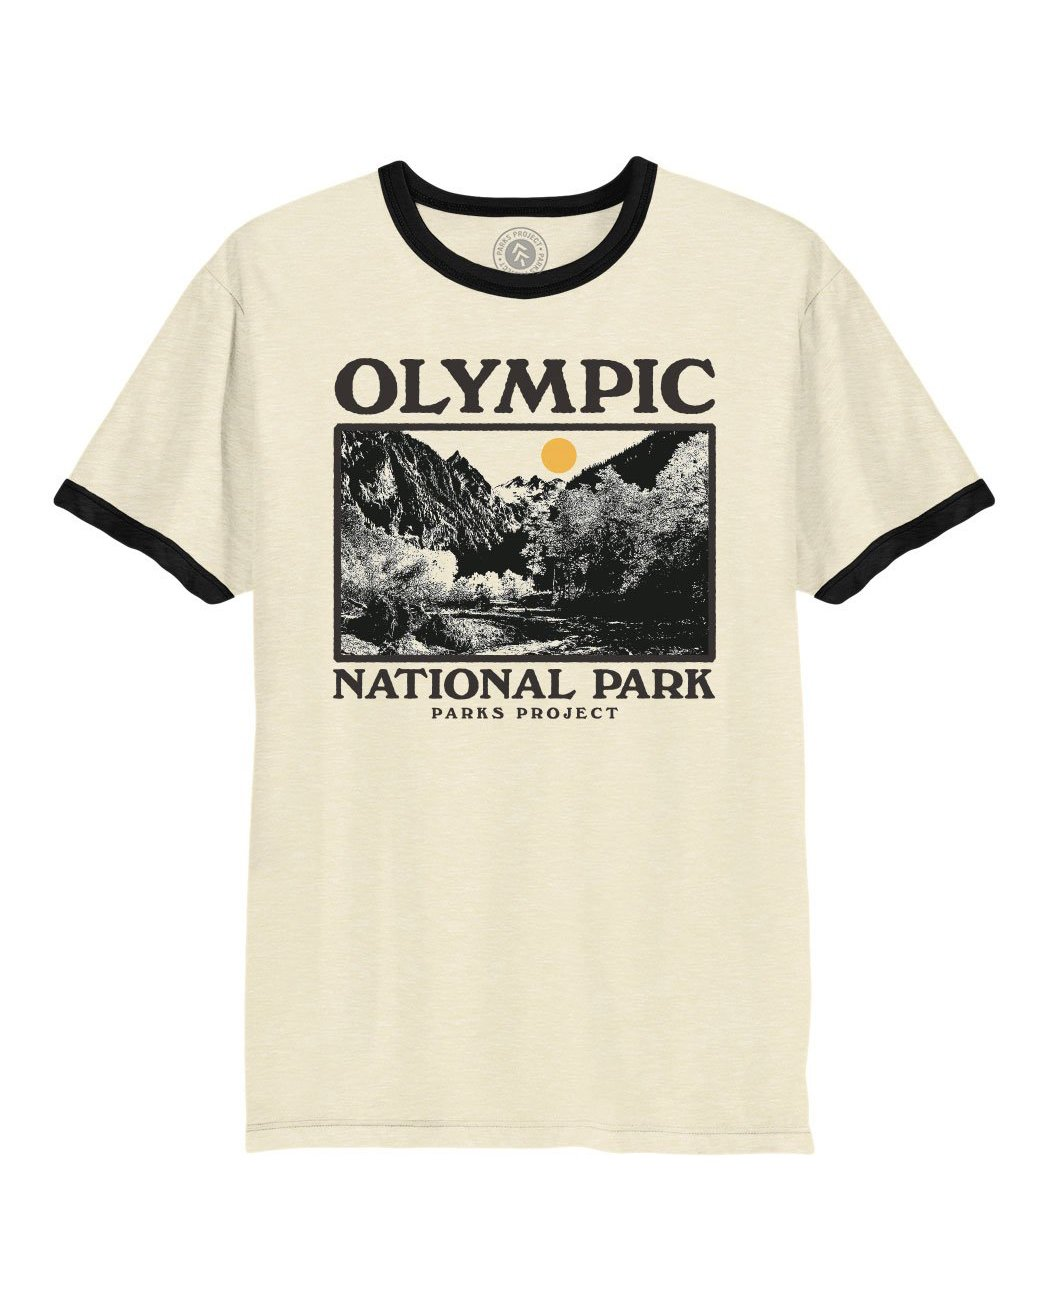 Holiday Gift Guide for National Park Lovers - Olympic TShirt